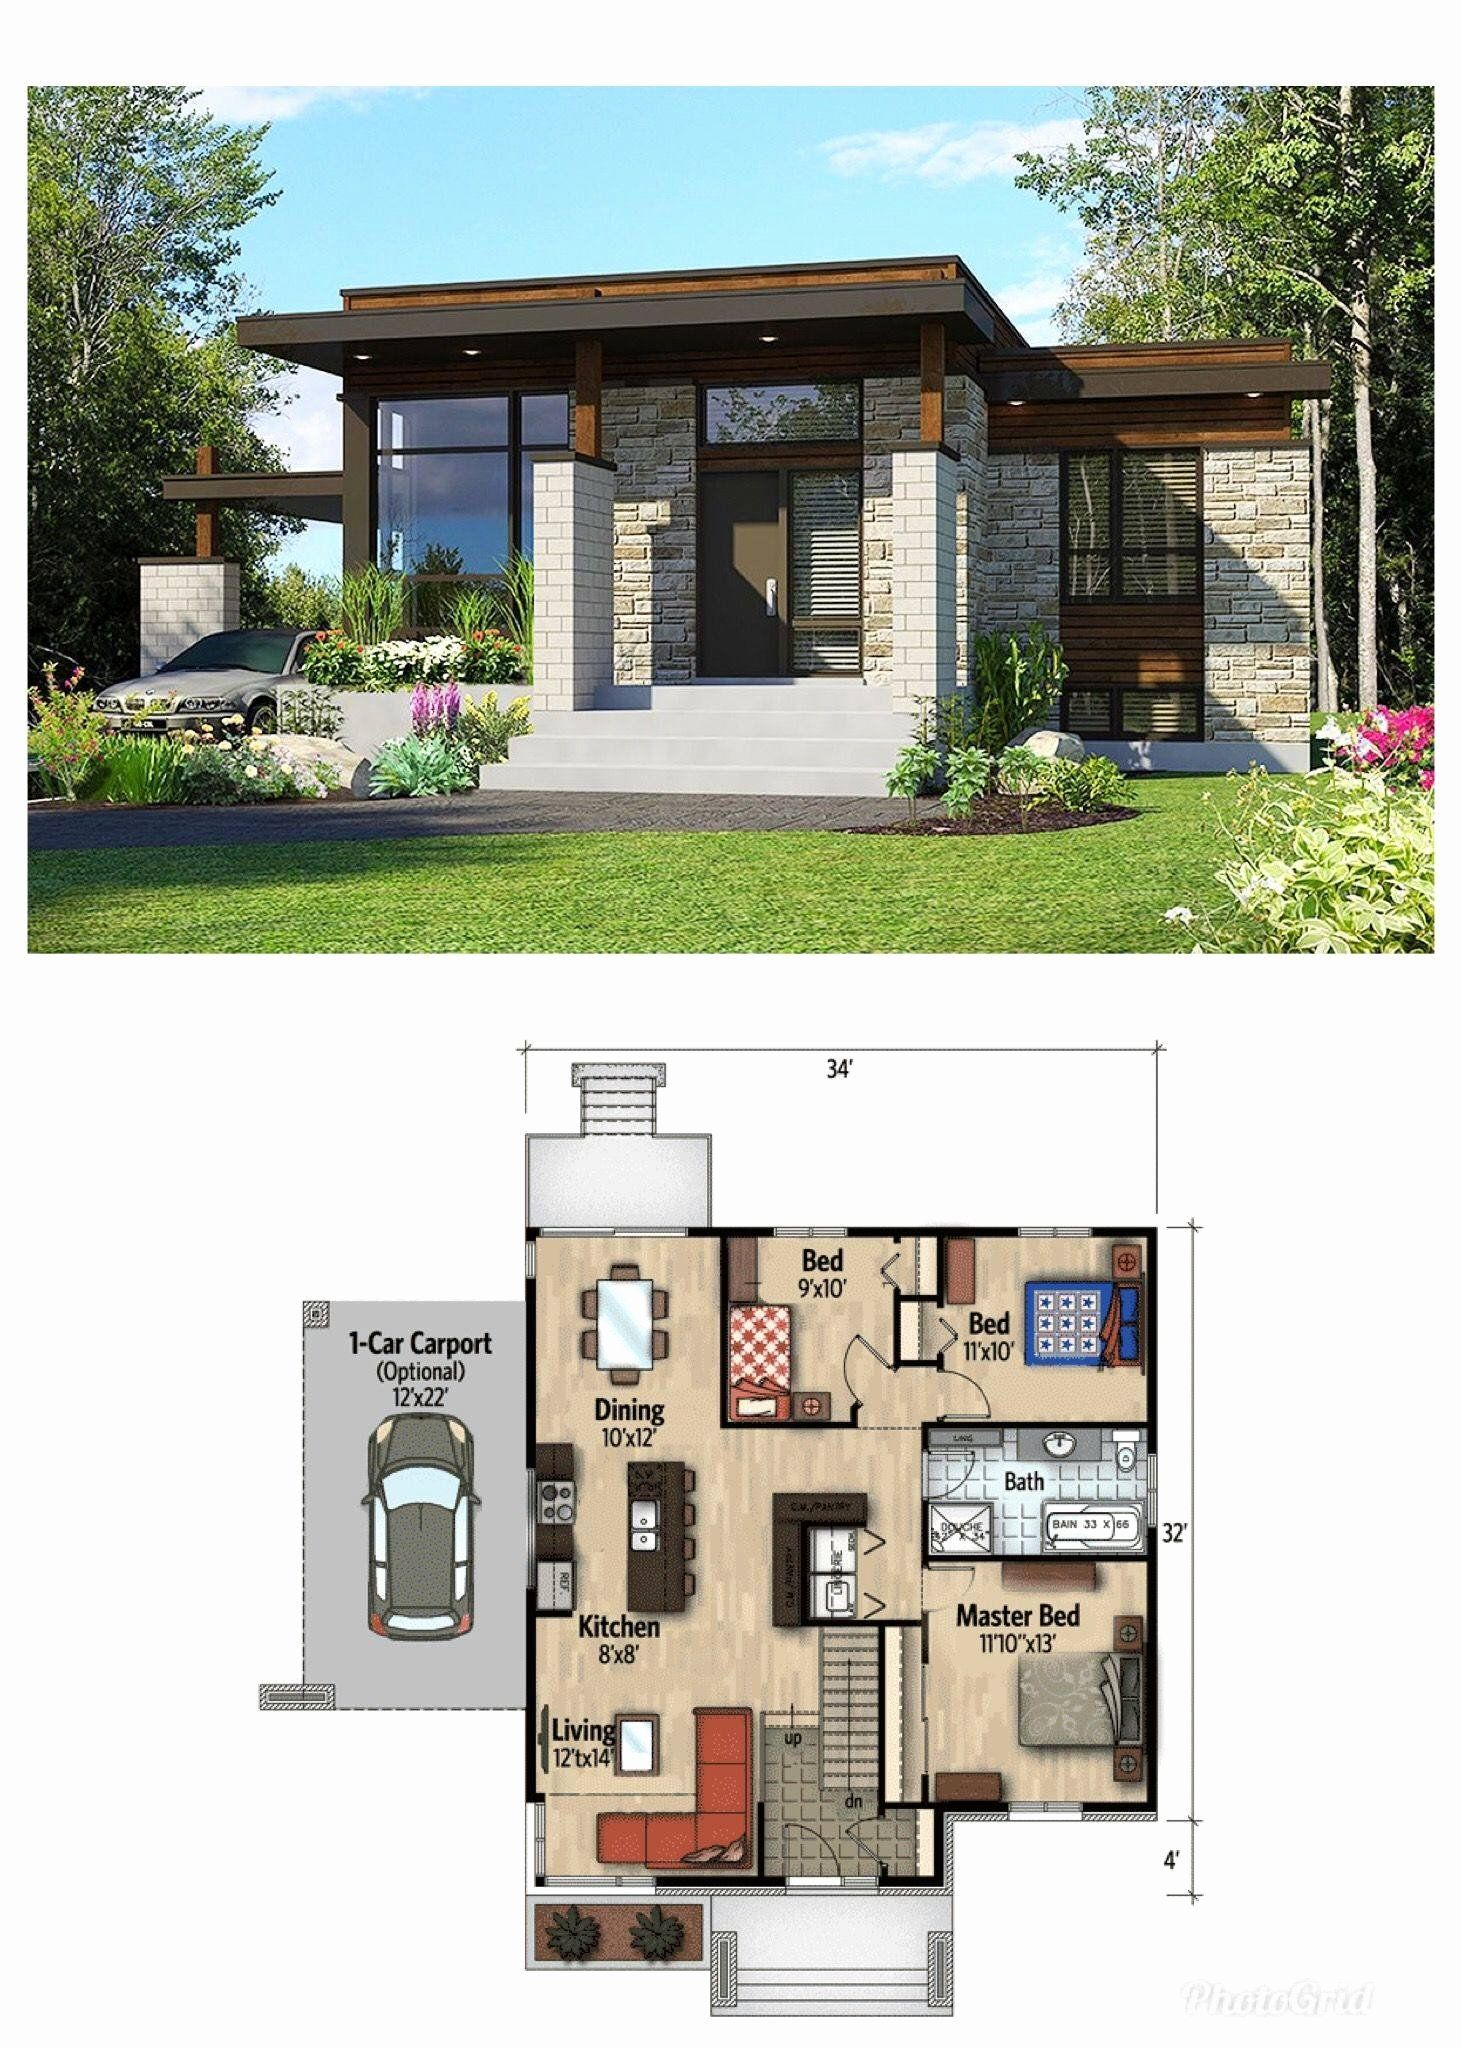 Ultra Contemporary House Plans Best Of Adorable Winning Modern Small House Plans Dream Ideas In 2020 Contemporary House Plans Small House Plans Modern Bungalow House